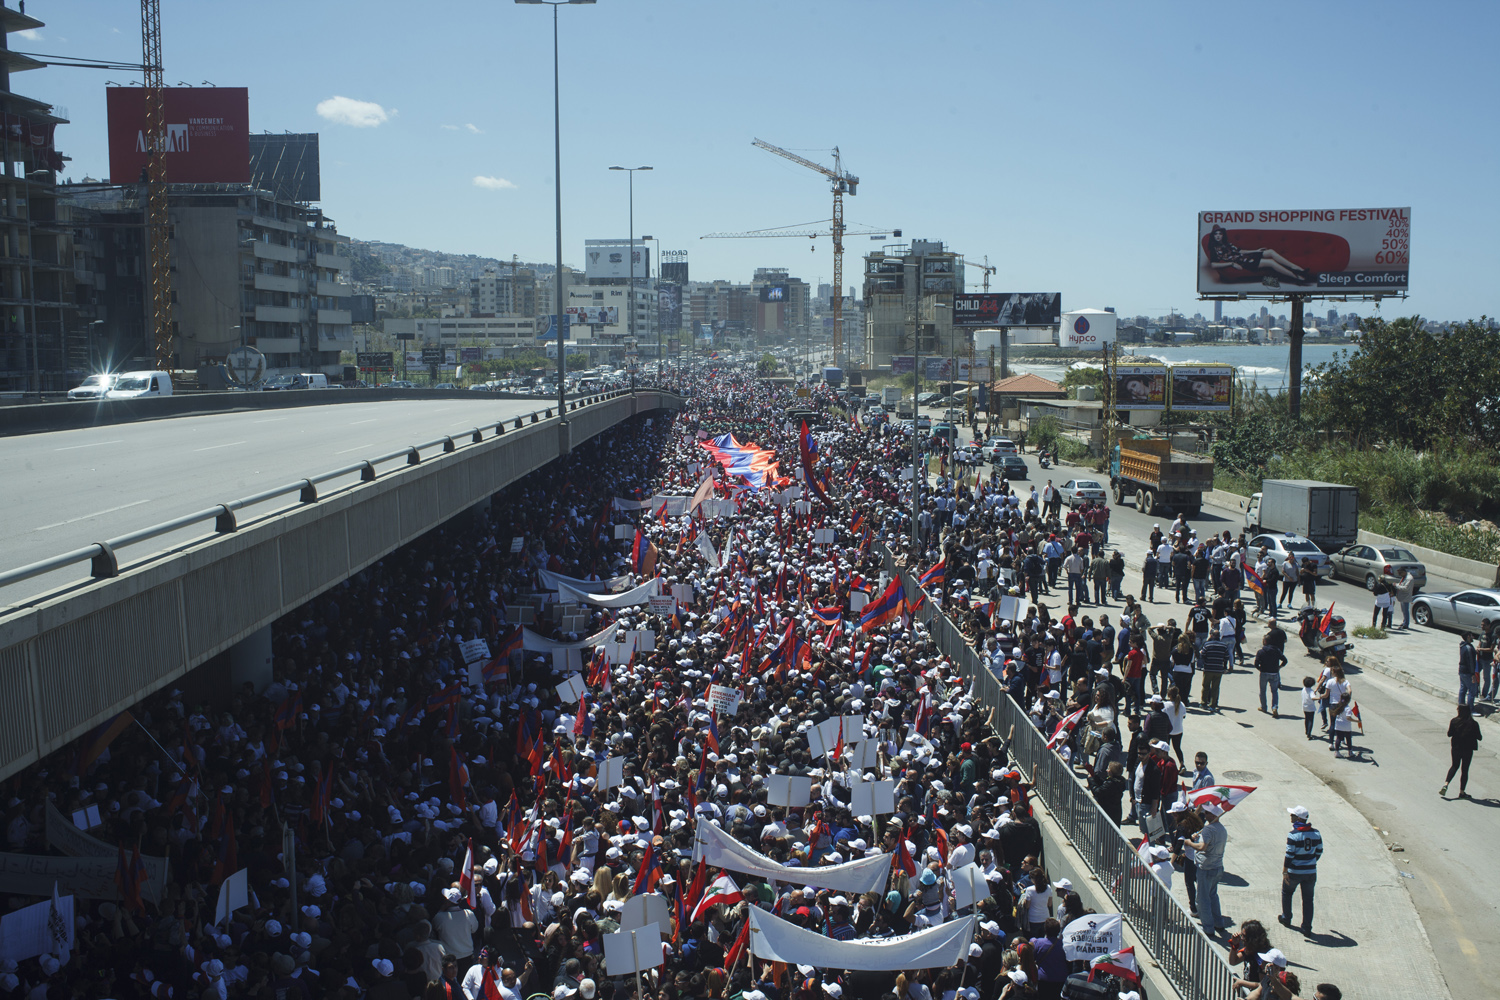 Lebanese Armenians and supporters marched on April 24th. Photo by Paul Gorra.